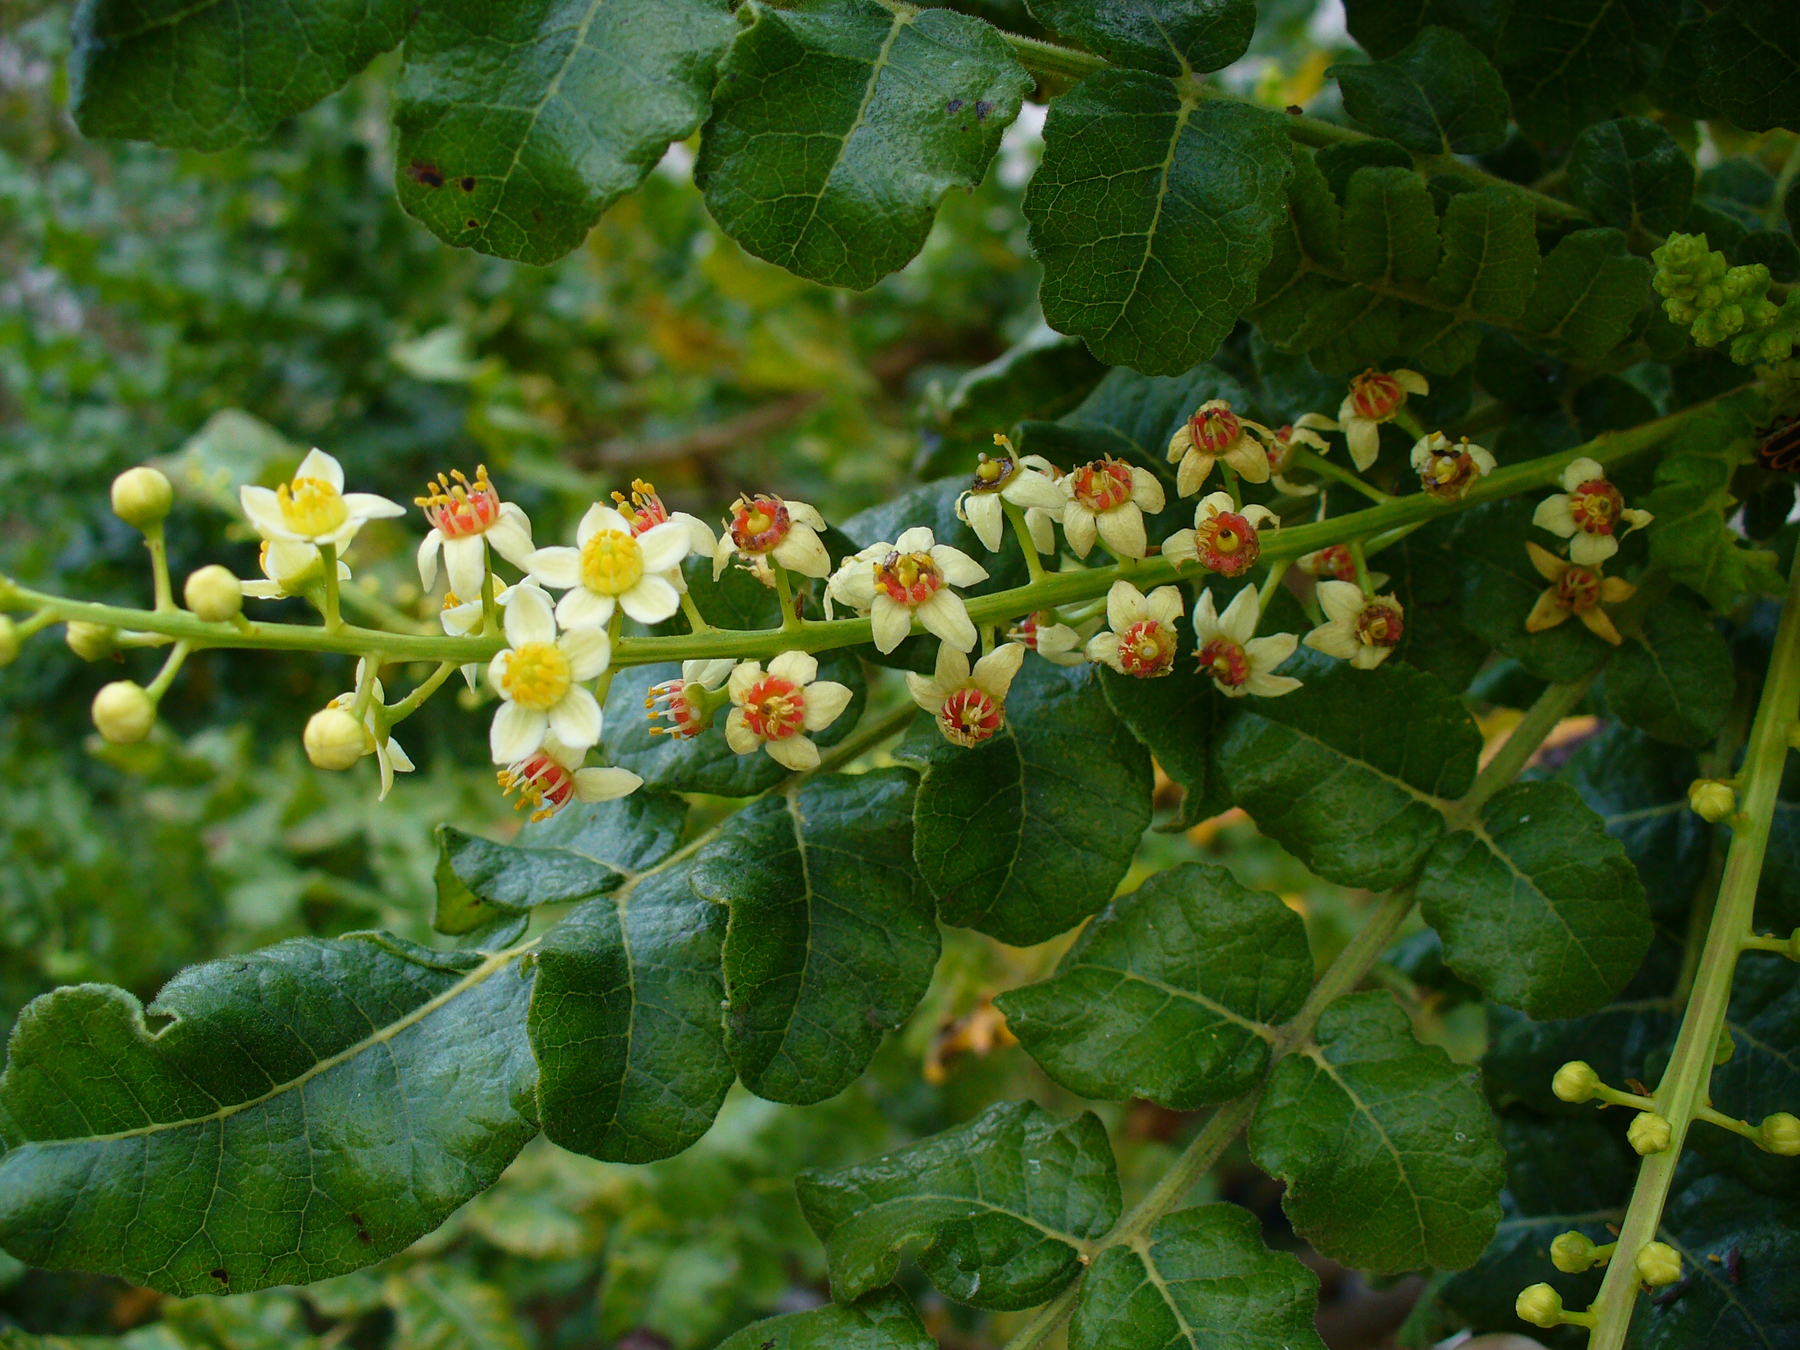 These are the beautiful flowers and branches of the frankincense tree, Boswellia sacra, from which frankincense oil is derived